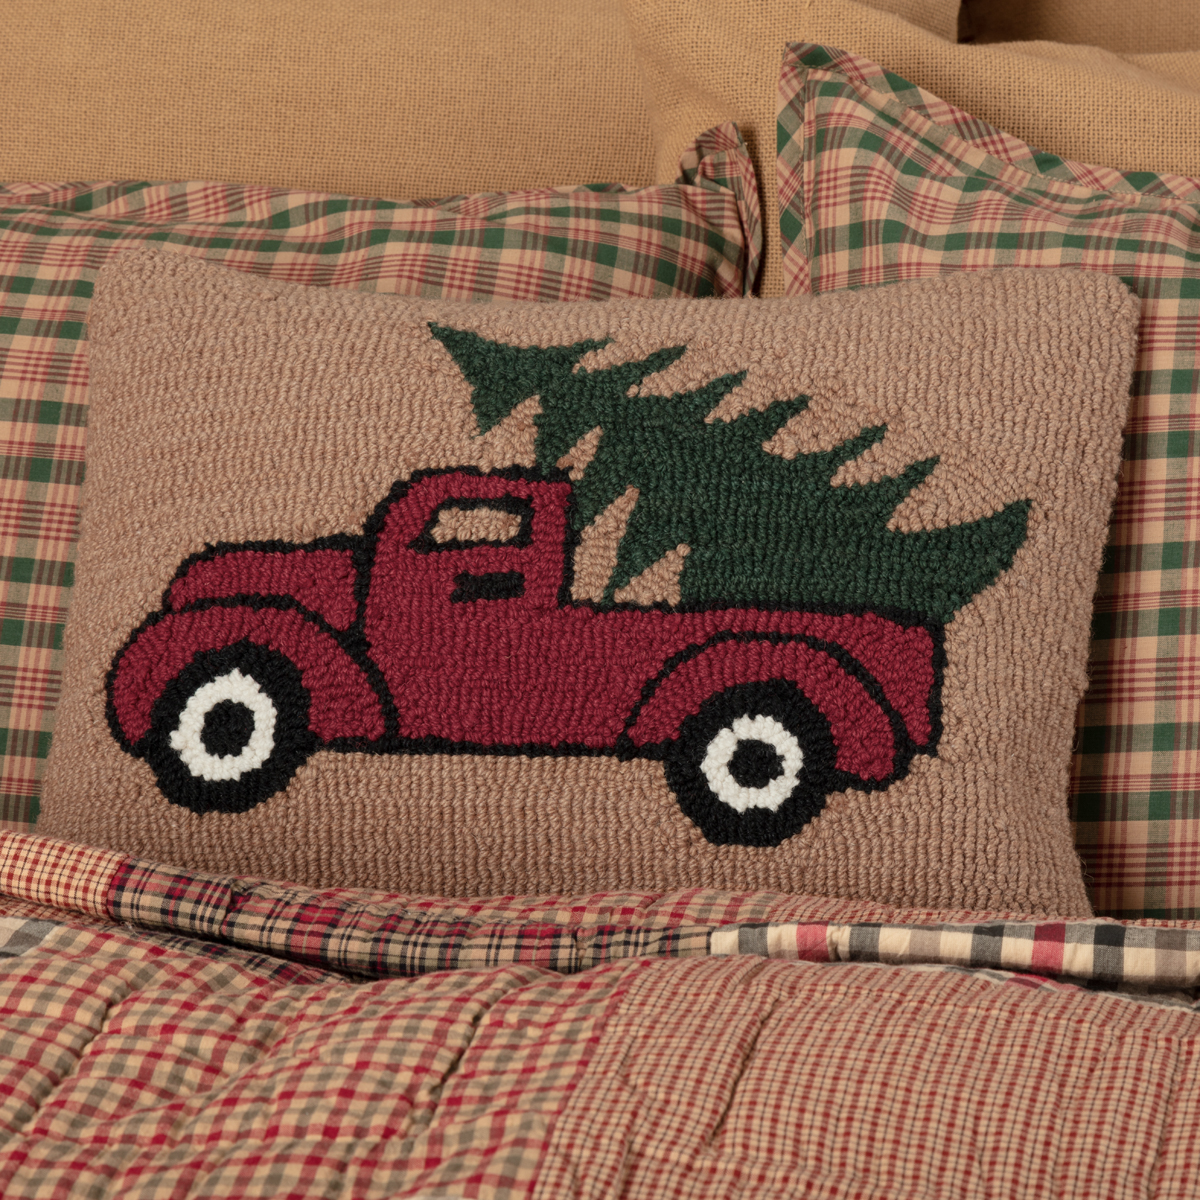 Primitive Christmas Pillow - Farm Truck with Christmas Tree - at The Weed Patch